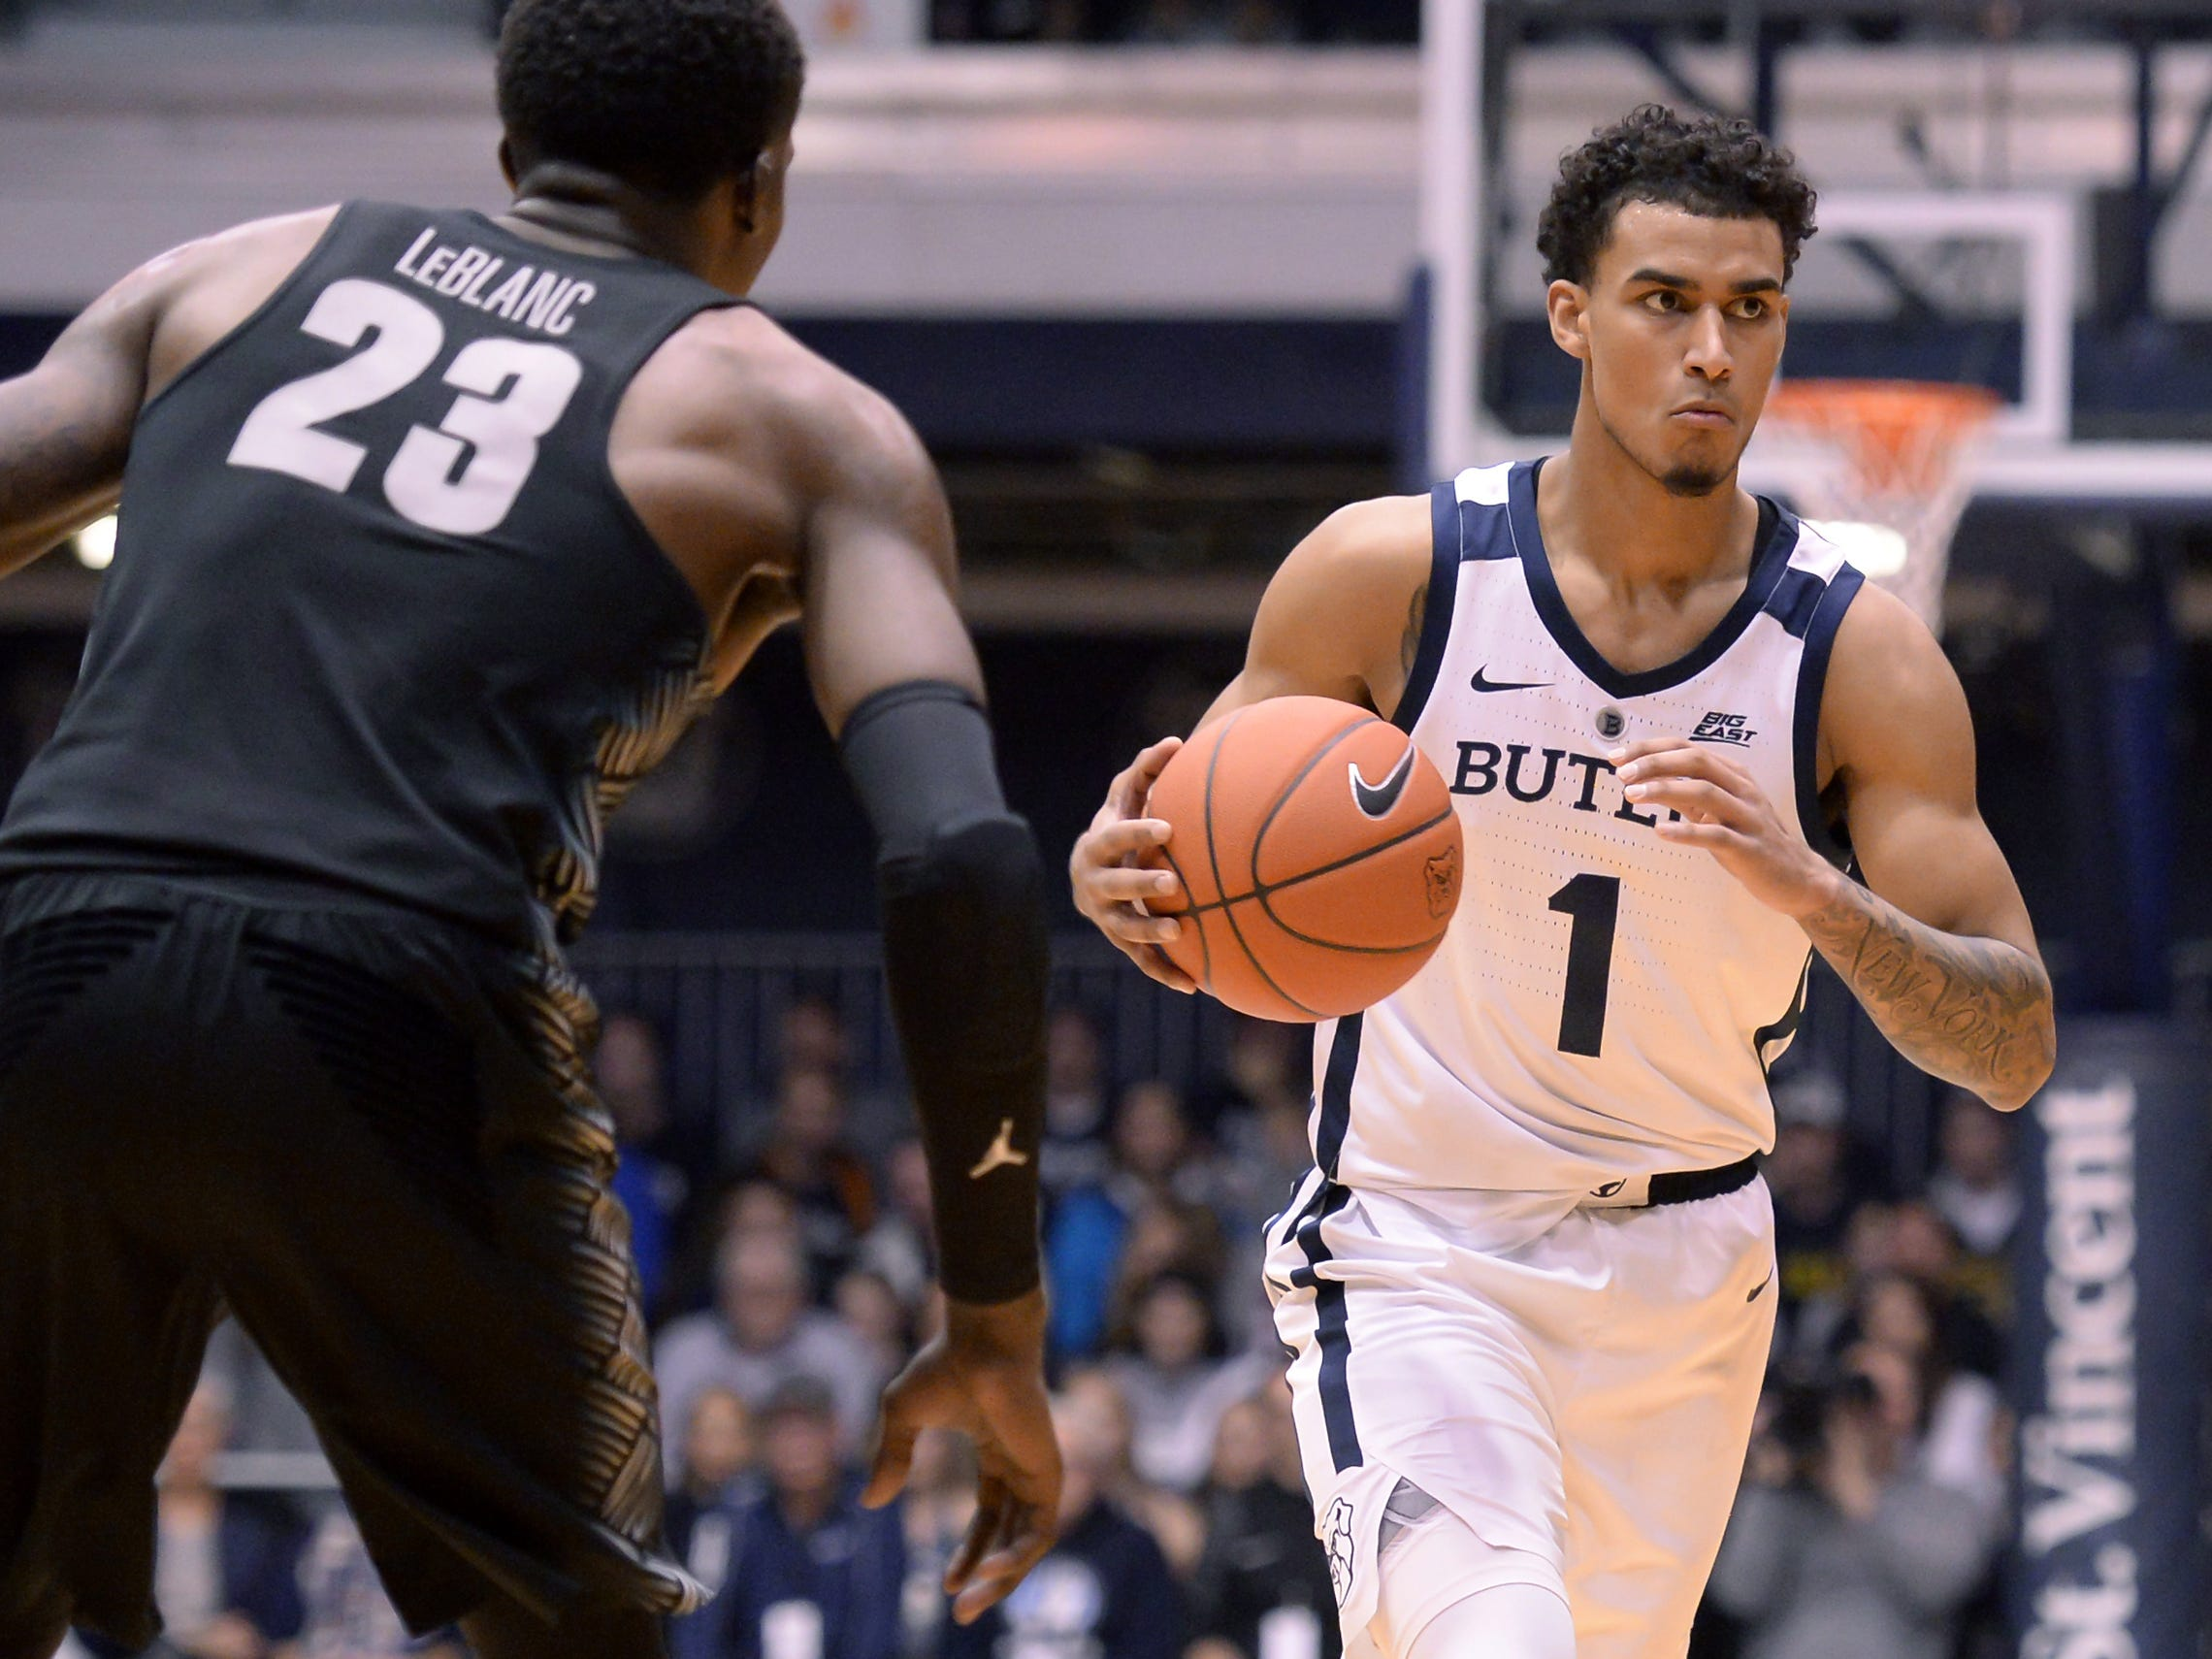 Butler Bulldogs forward Jordan Tucker (1) carries the ball against Georgetown Hoyas forward Josh LeBlanc (23) during the first half of game action between Butler University and Georgetown University, at Hinkle Fieldhouse in Indianapolis, Indiana on Wednesday, Jan. 2, 2019. The Butler Bulldogs fell to the Georgetown Hoyas 84-76.